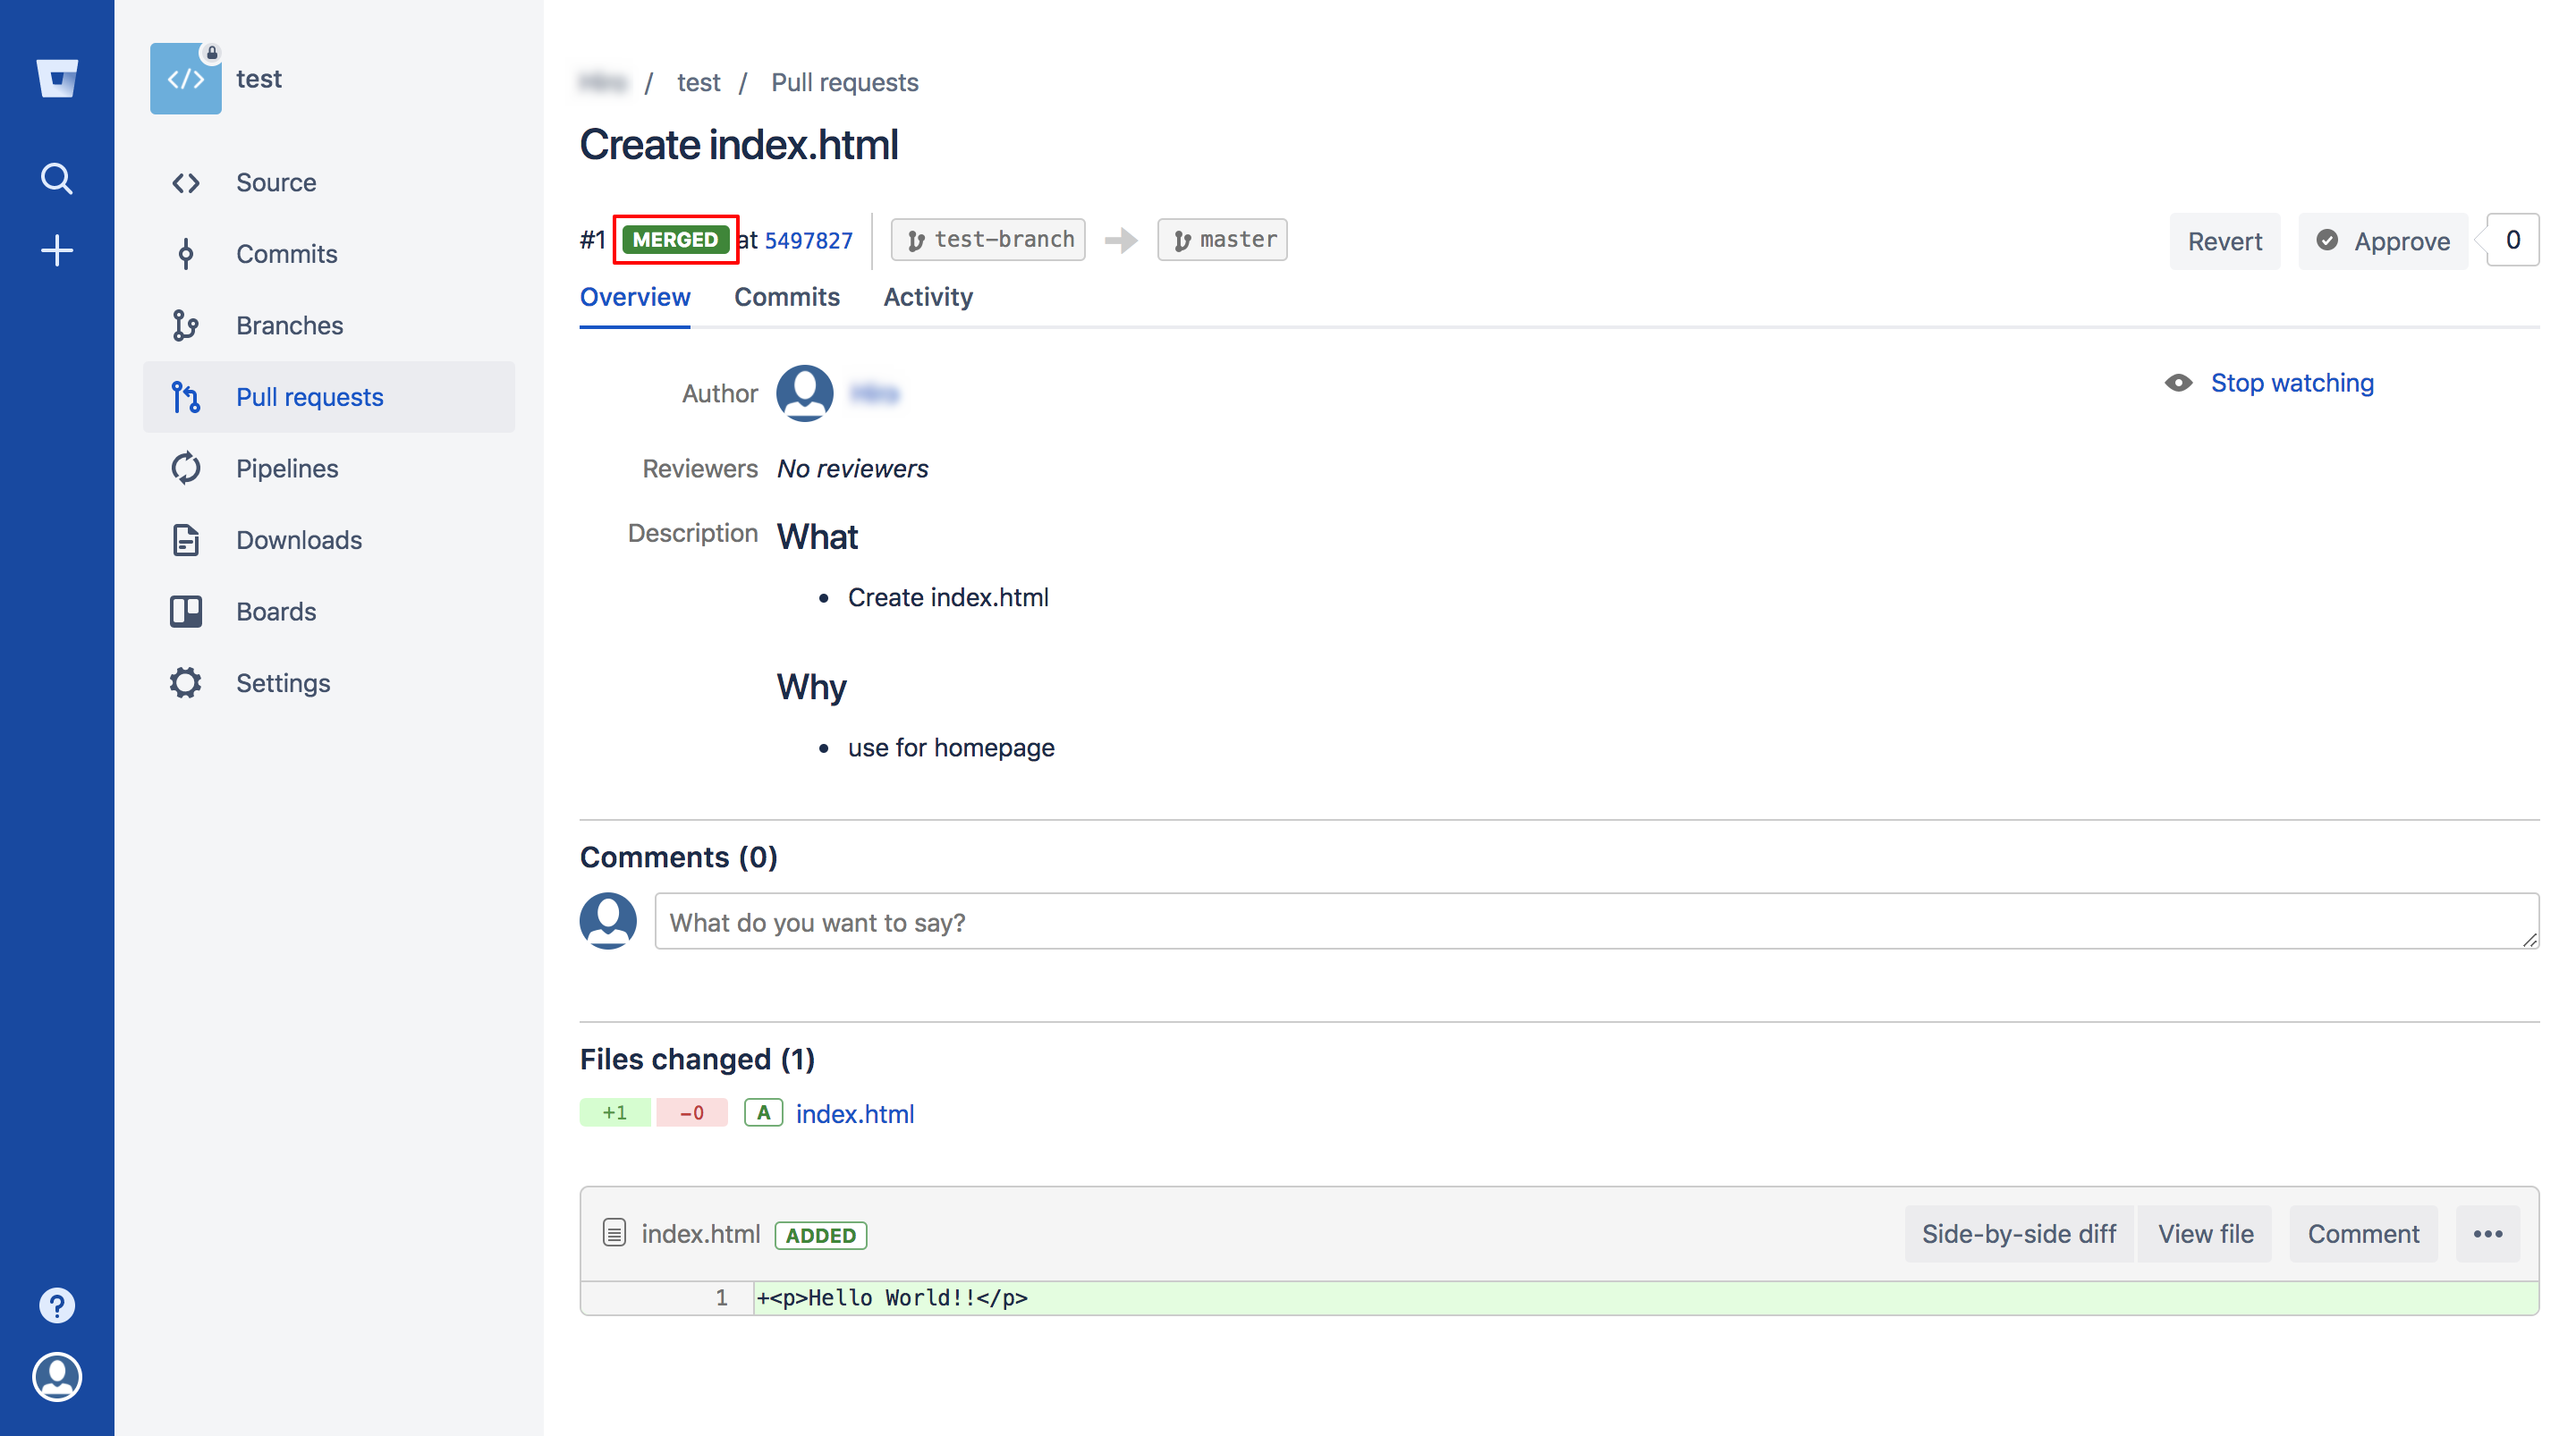 nago3   test   Pull request  1  Create index html — Bitbucket (2).png